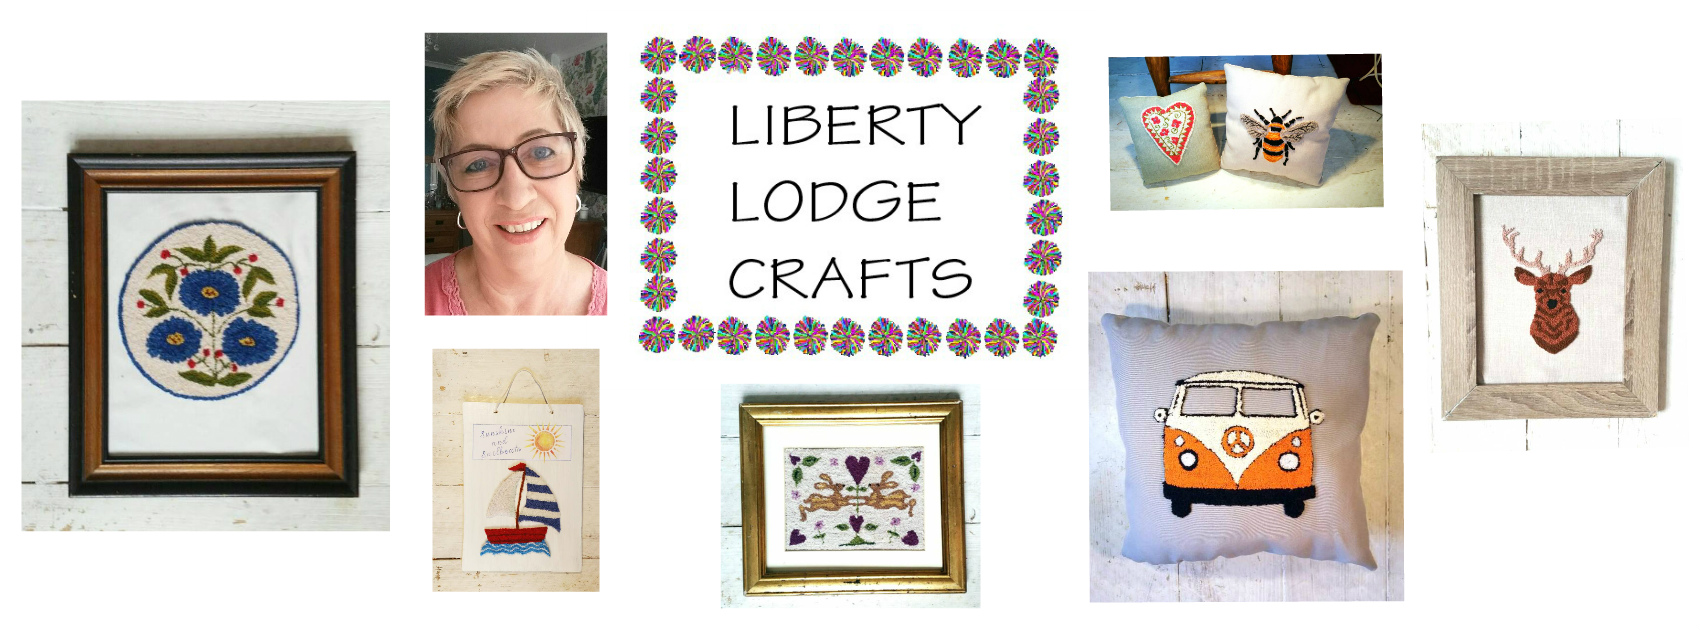 liberty lodge crafts1